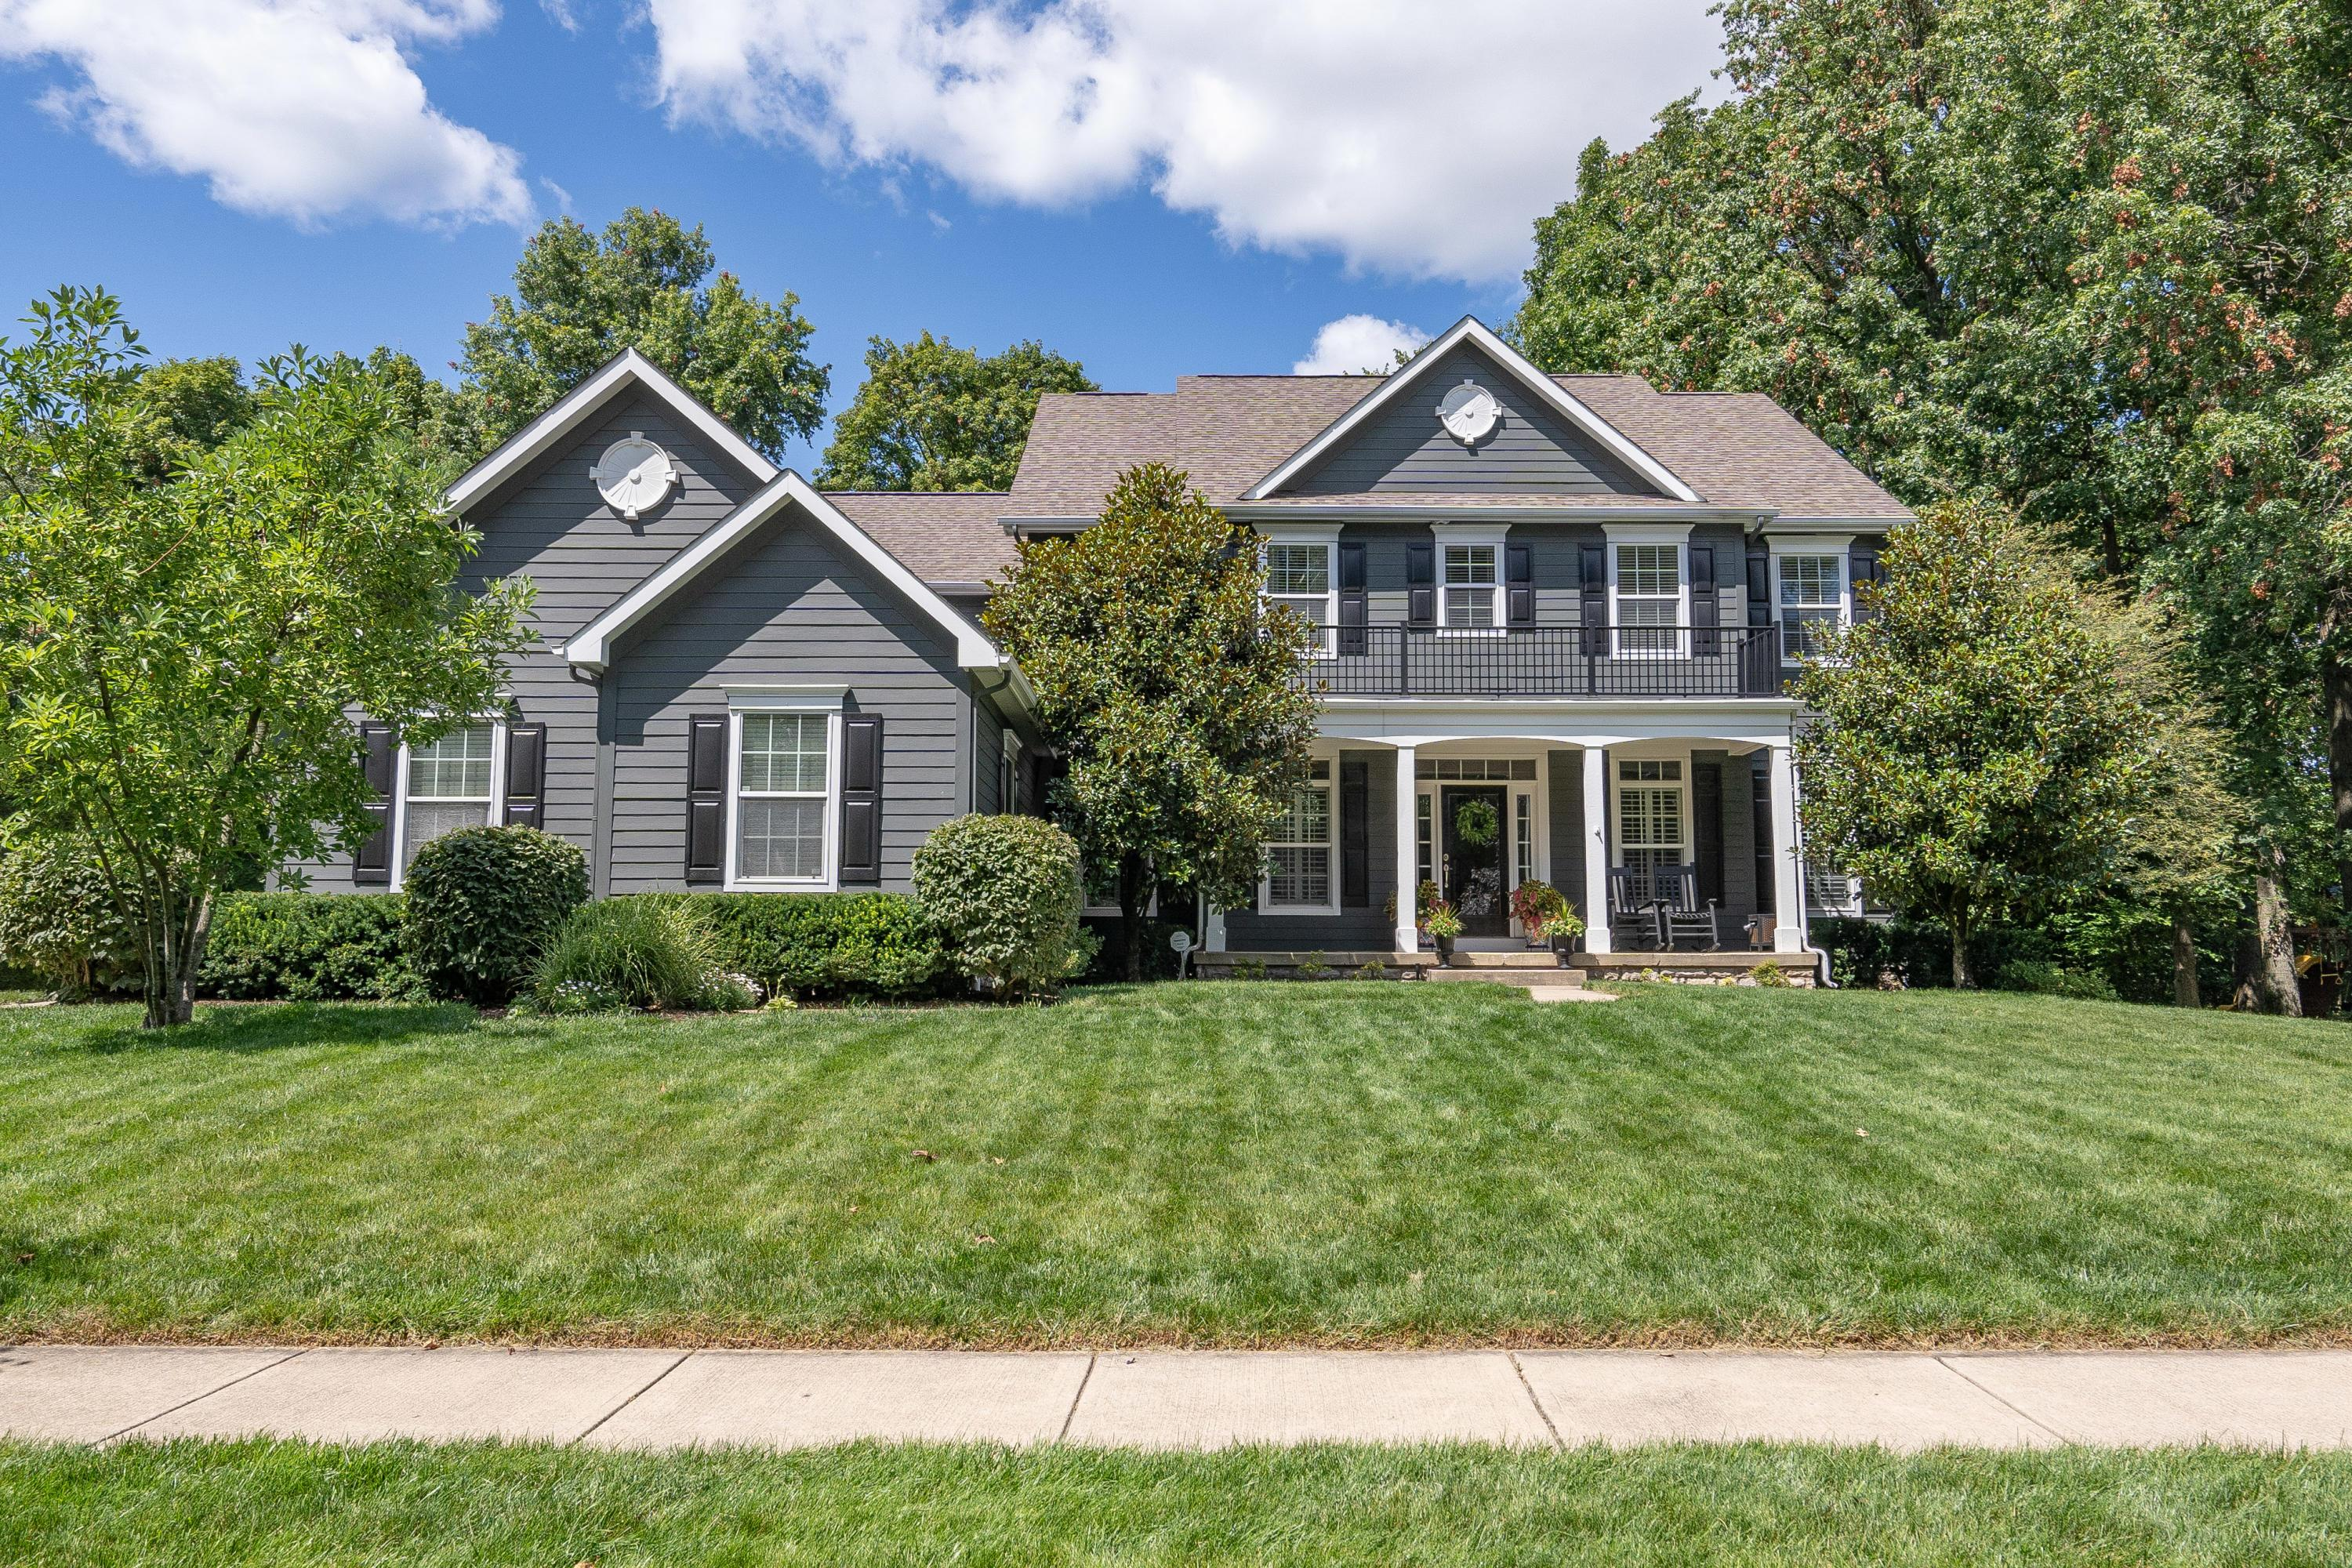 Photo of 9069 Creighton Drive, Powell, OH 43065